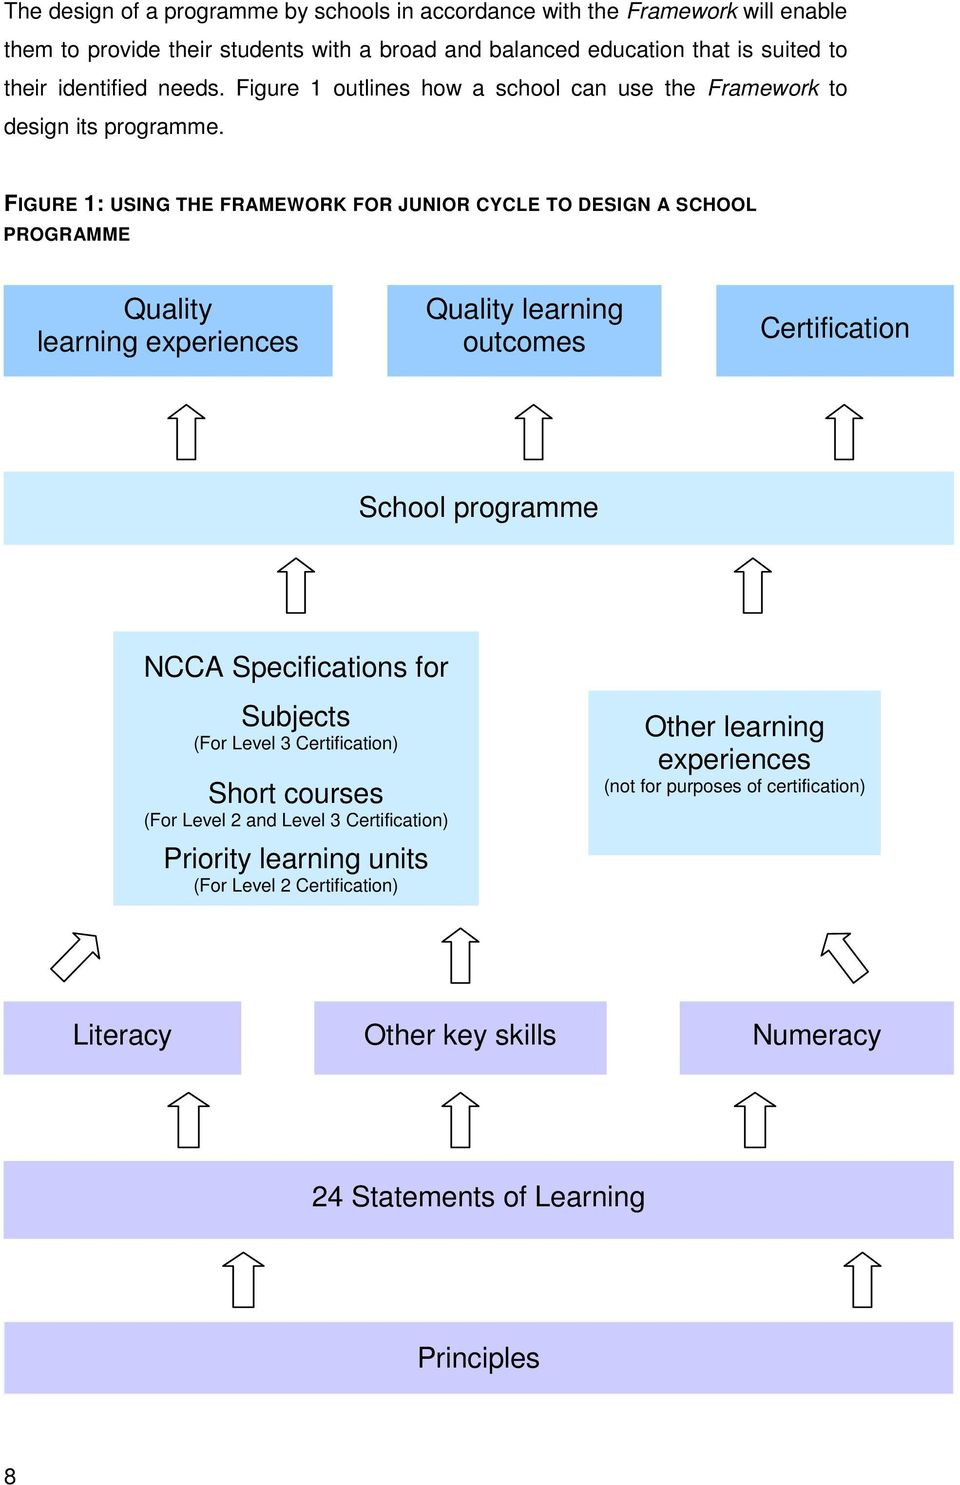 FIGURE 1: USING THE FRAMEWORK FOR JUNIOR CYCLE TO DESIGN A SCHOOL PROGRAMME Quality learning experiences Quality learning outcomes Certification School programme NCCA Specifications